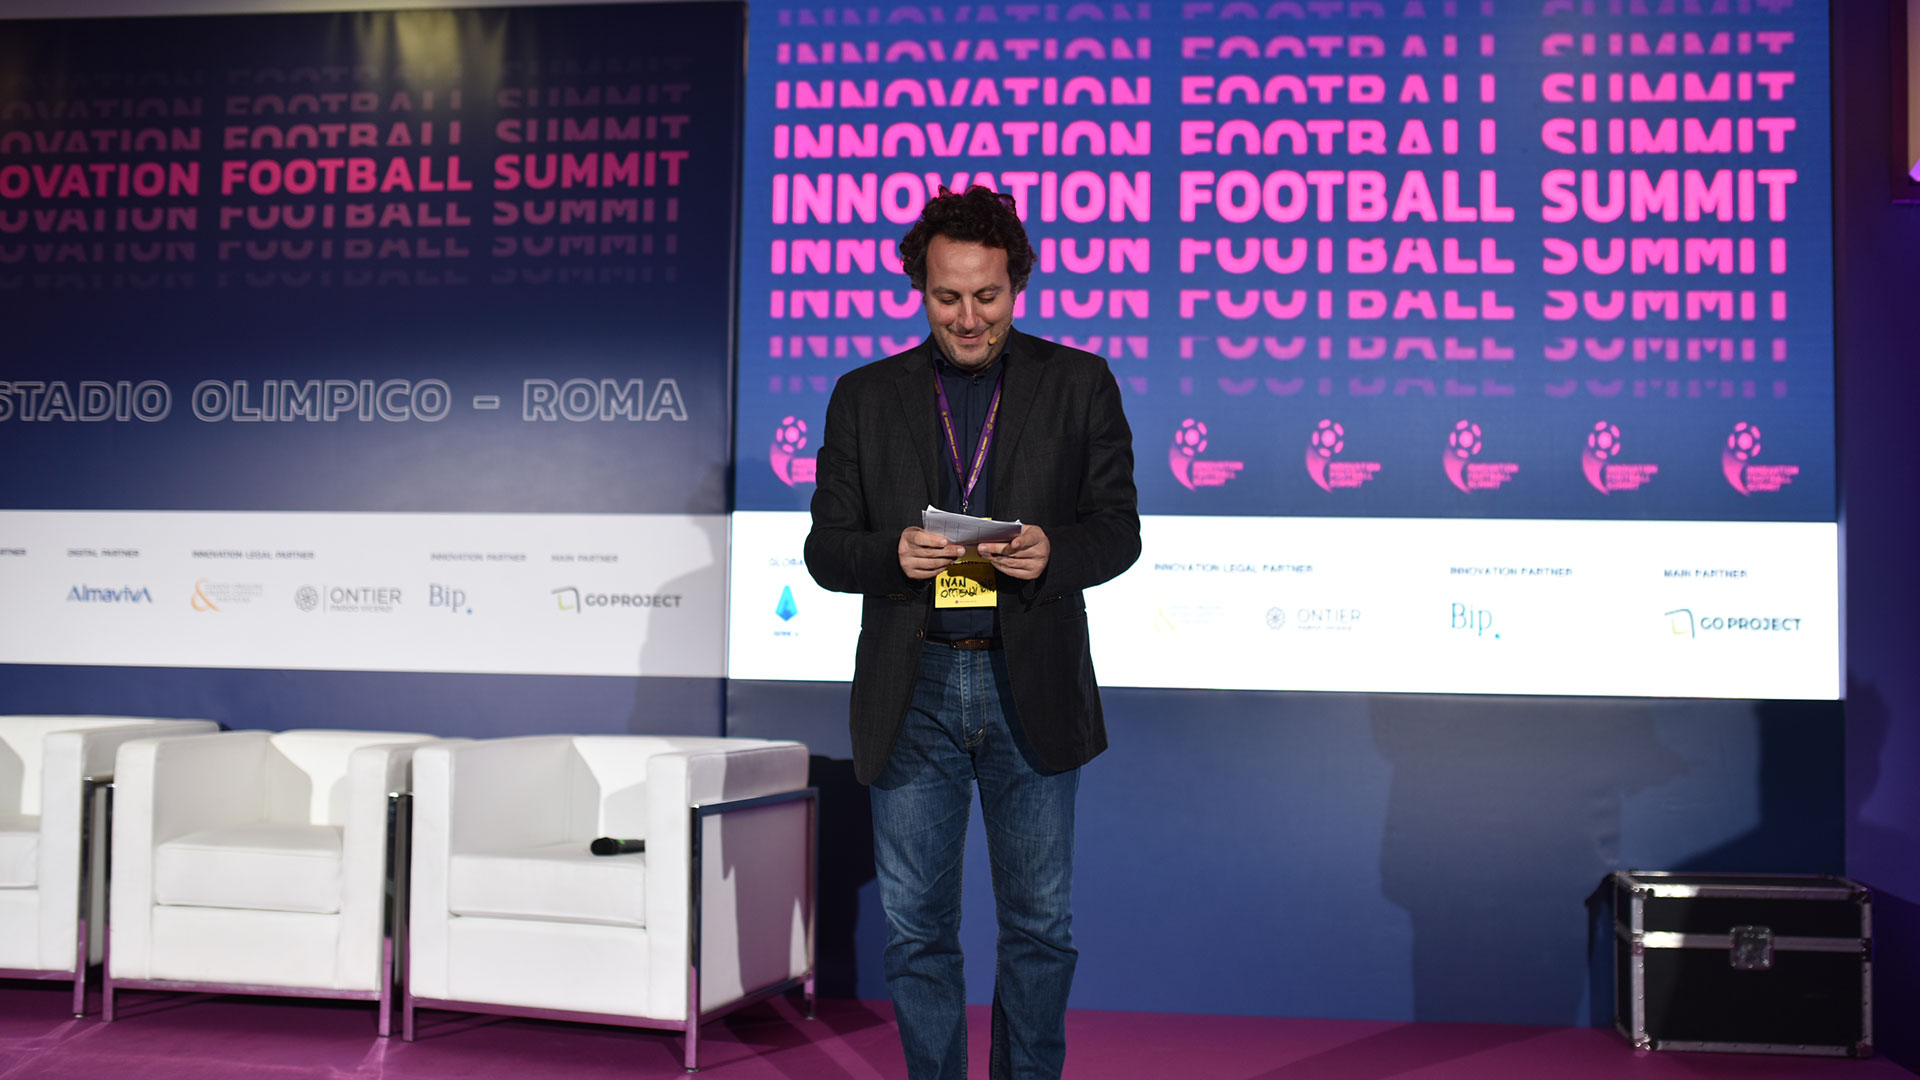 sociall football summit ivan ortenzi